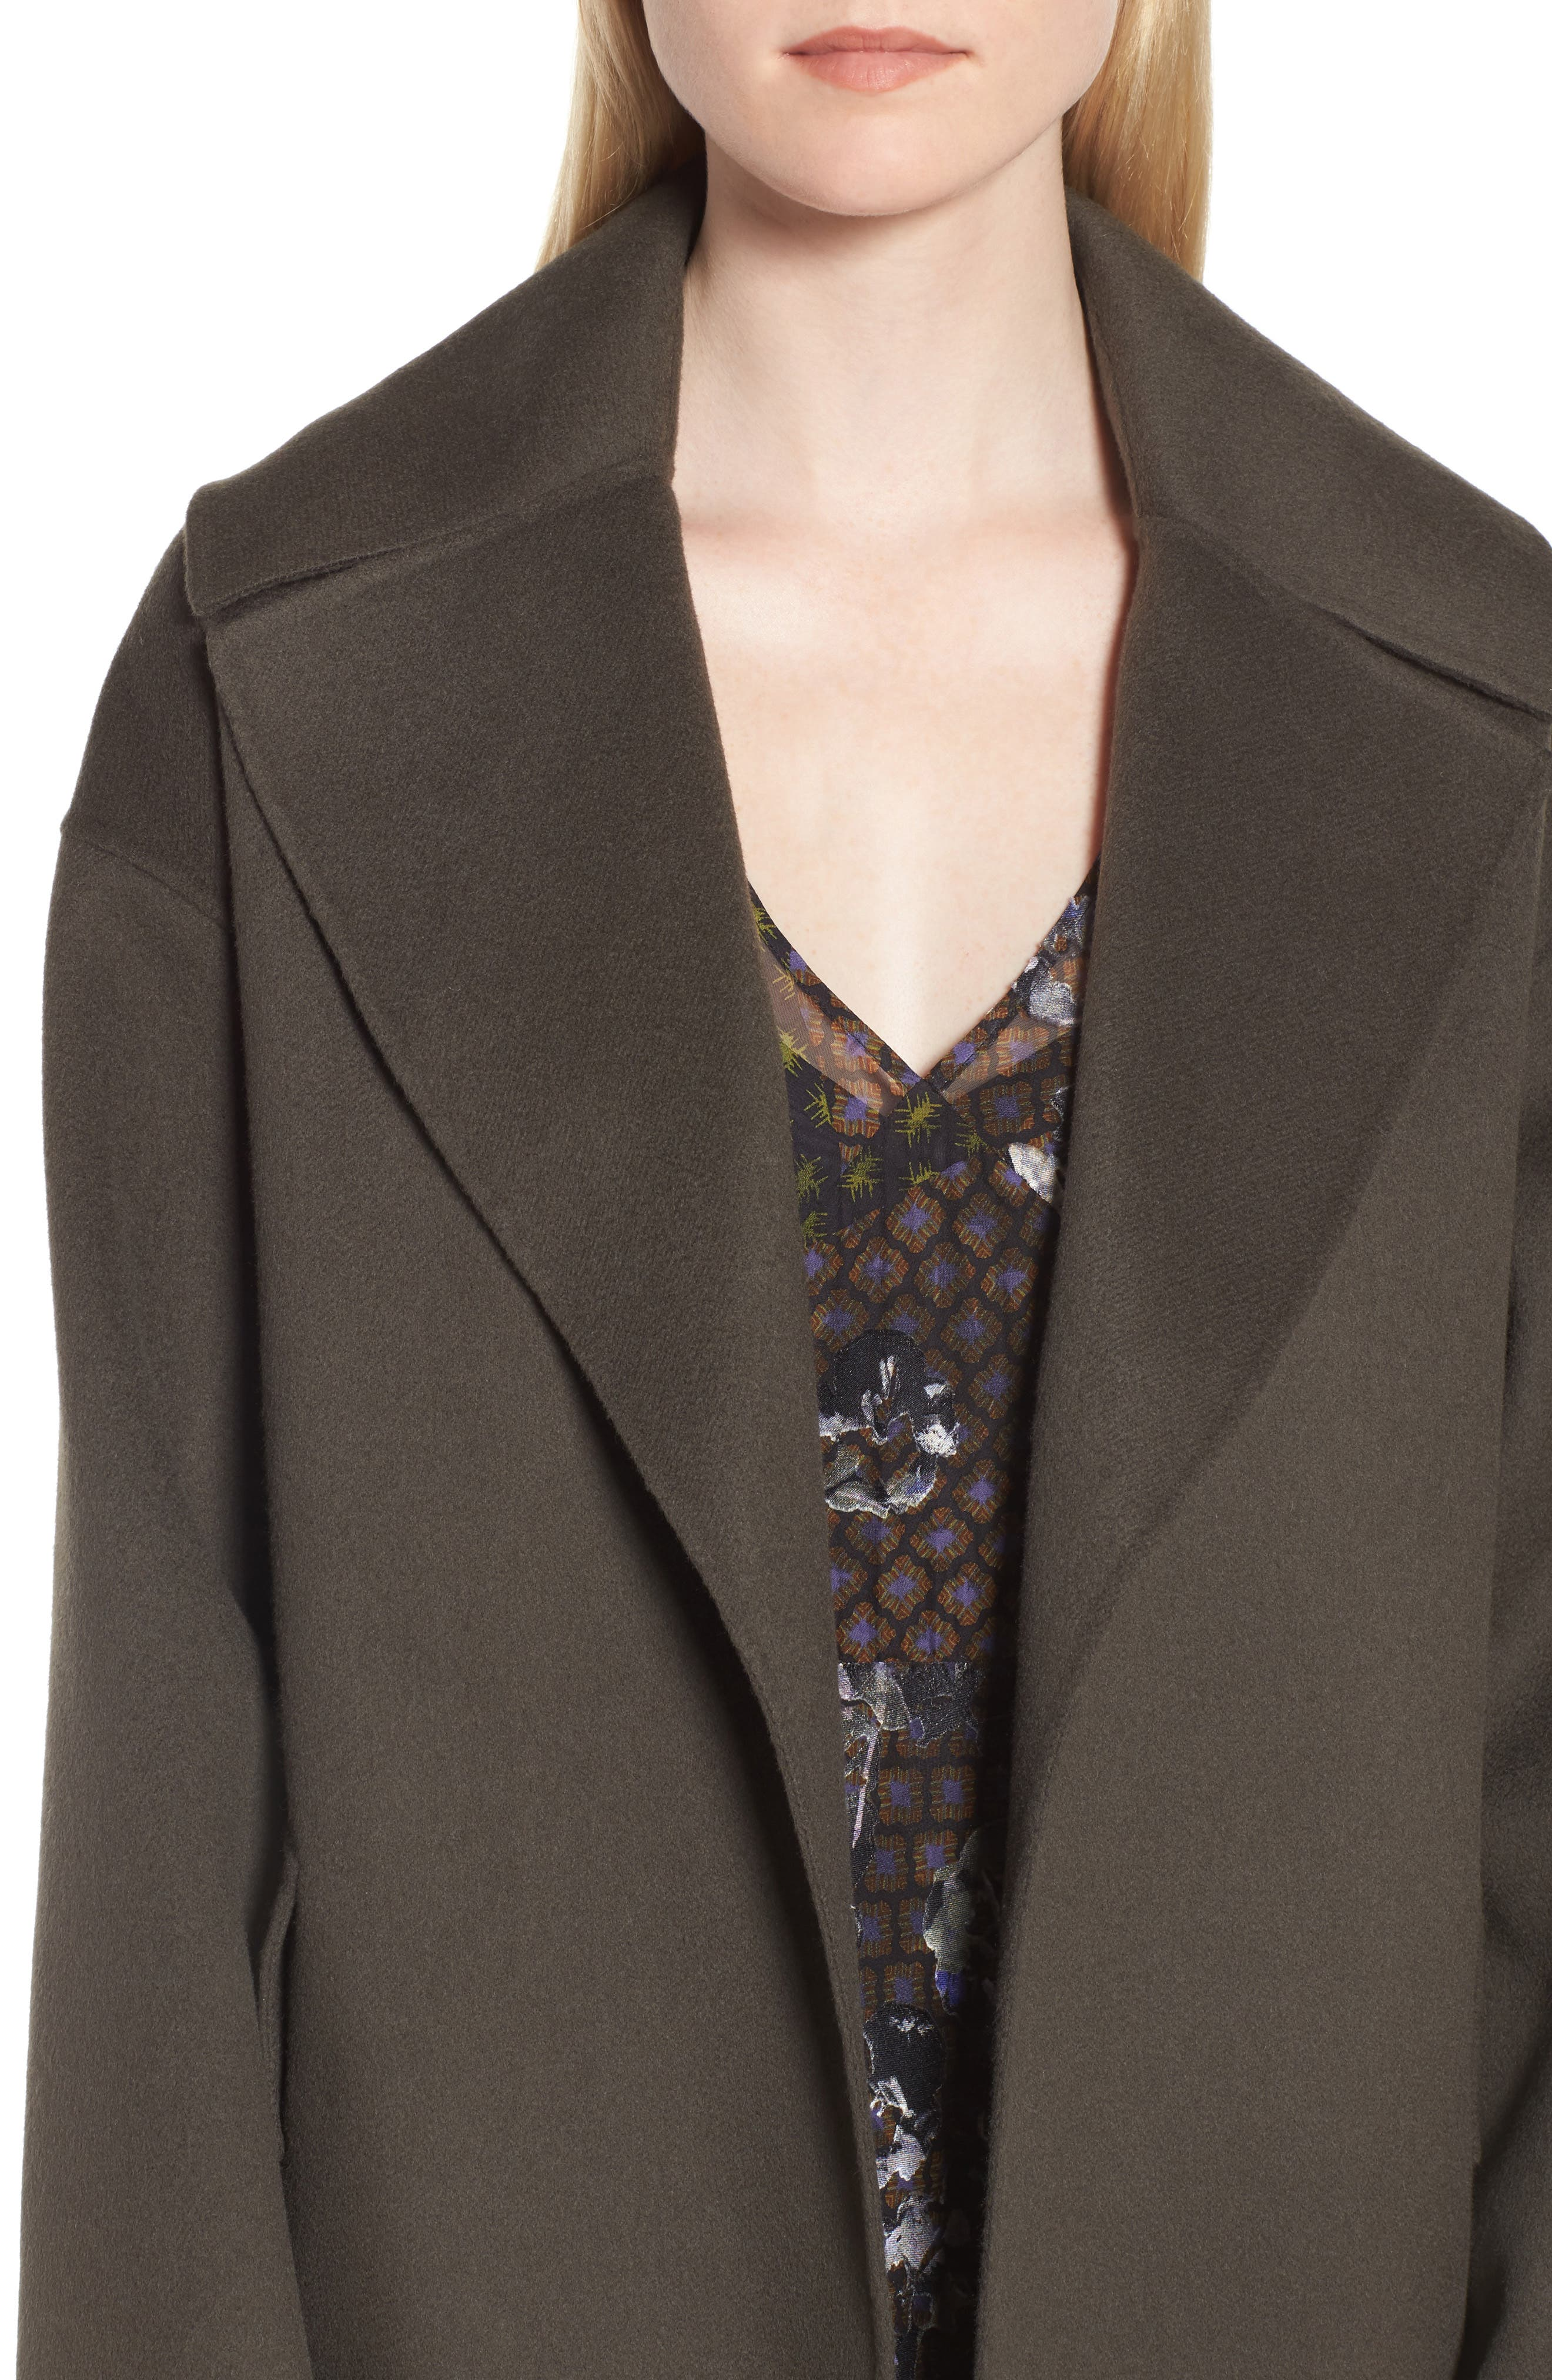 Double-Face Wool & Cashmere Coat,                             Alternate thumbnail 5, color,                             Olive Tuscan